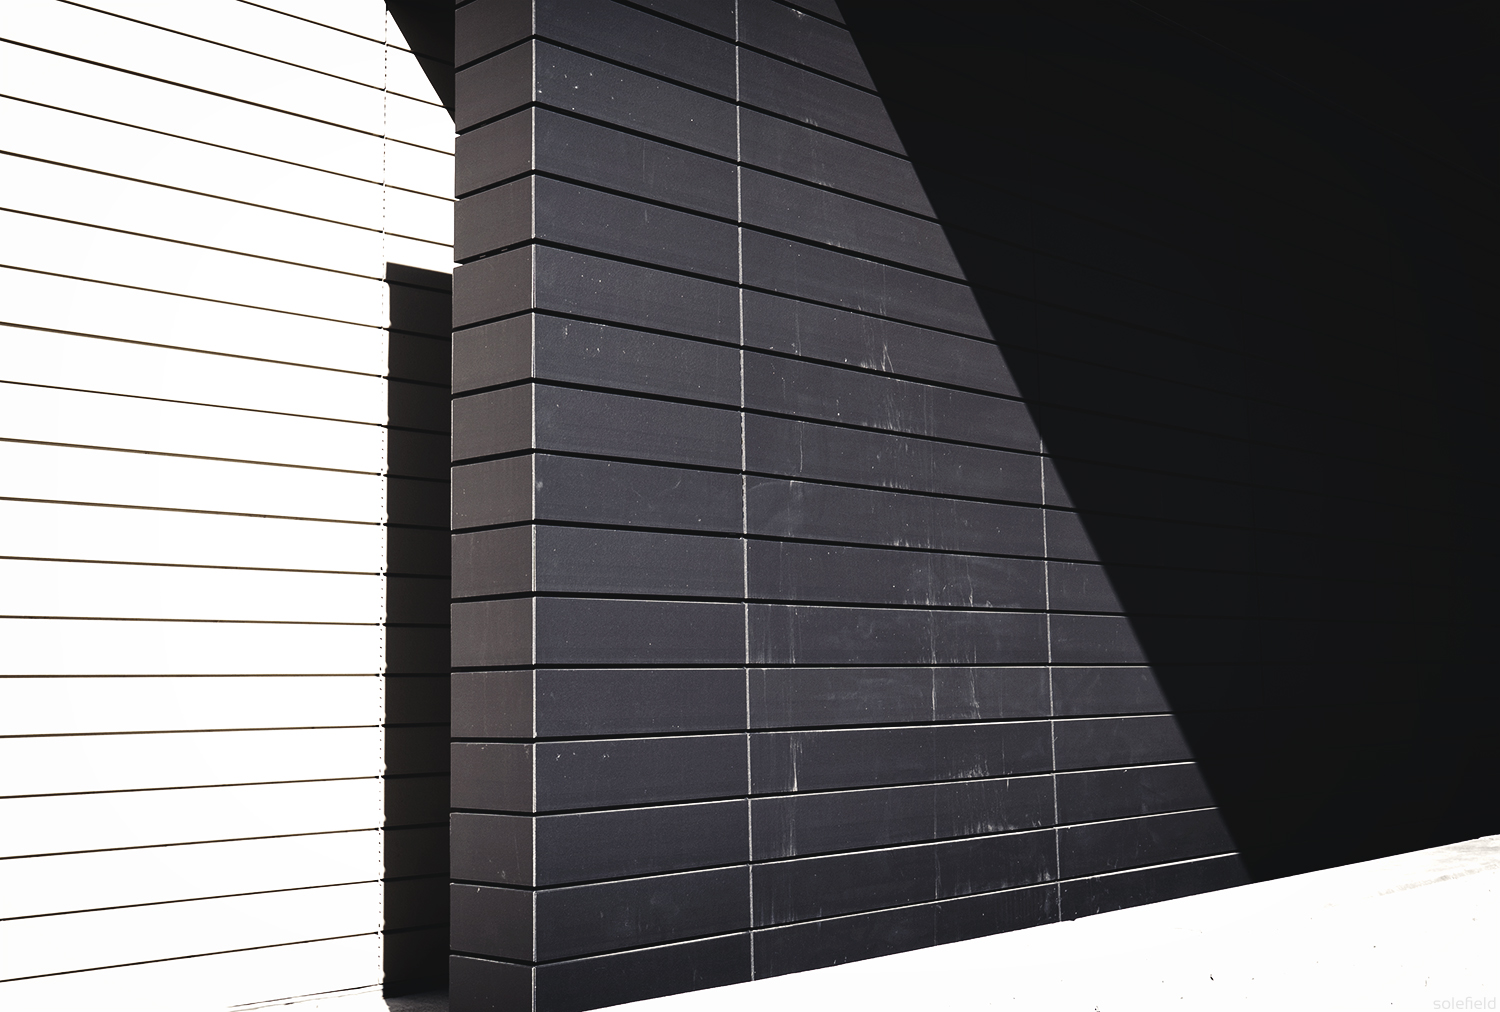 Black and White Wall in Shadow and Light